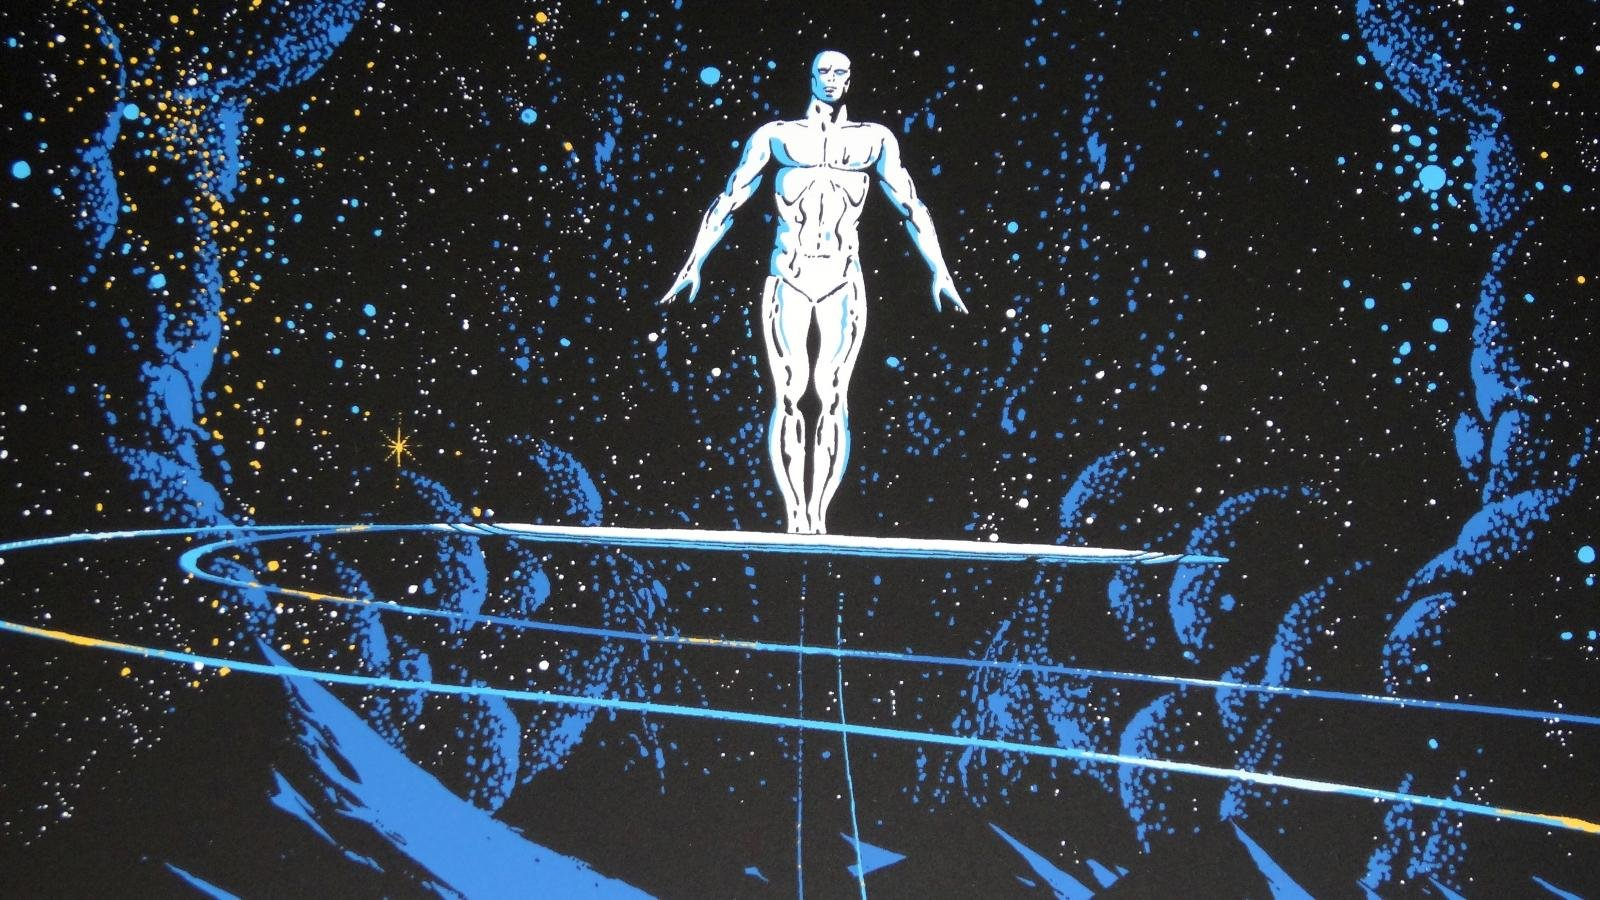 Free Download Silver Surfer Background Id 165174 Hd 1600x900 For Pc